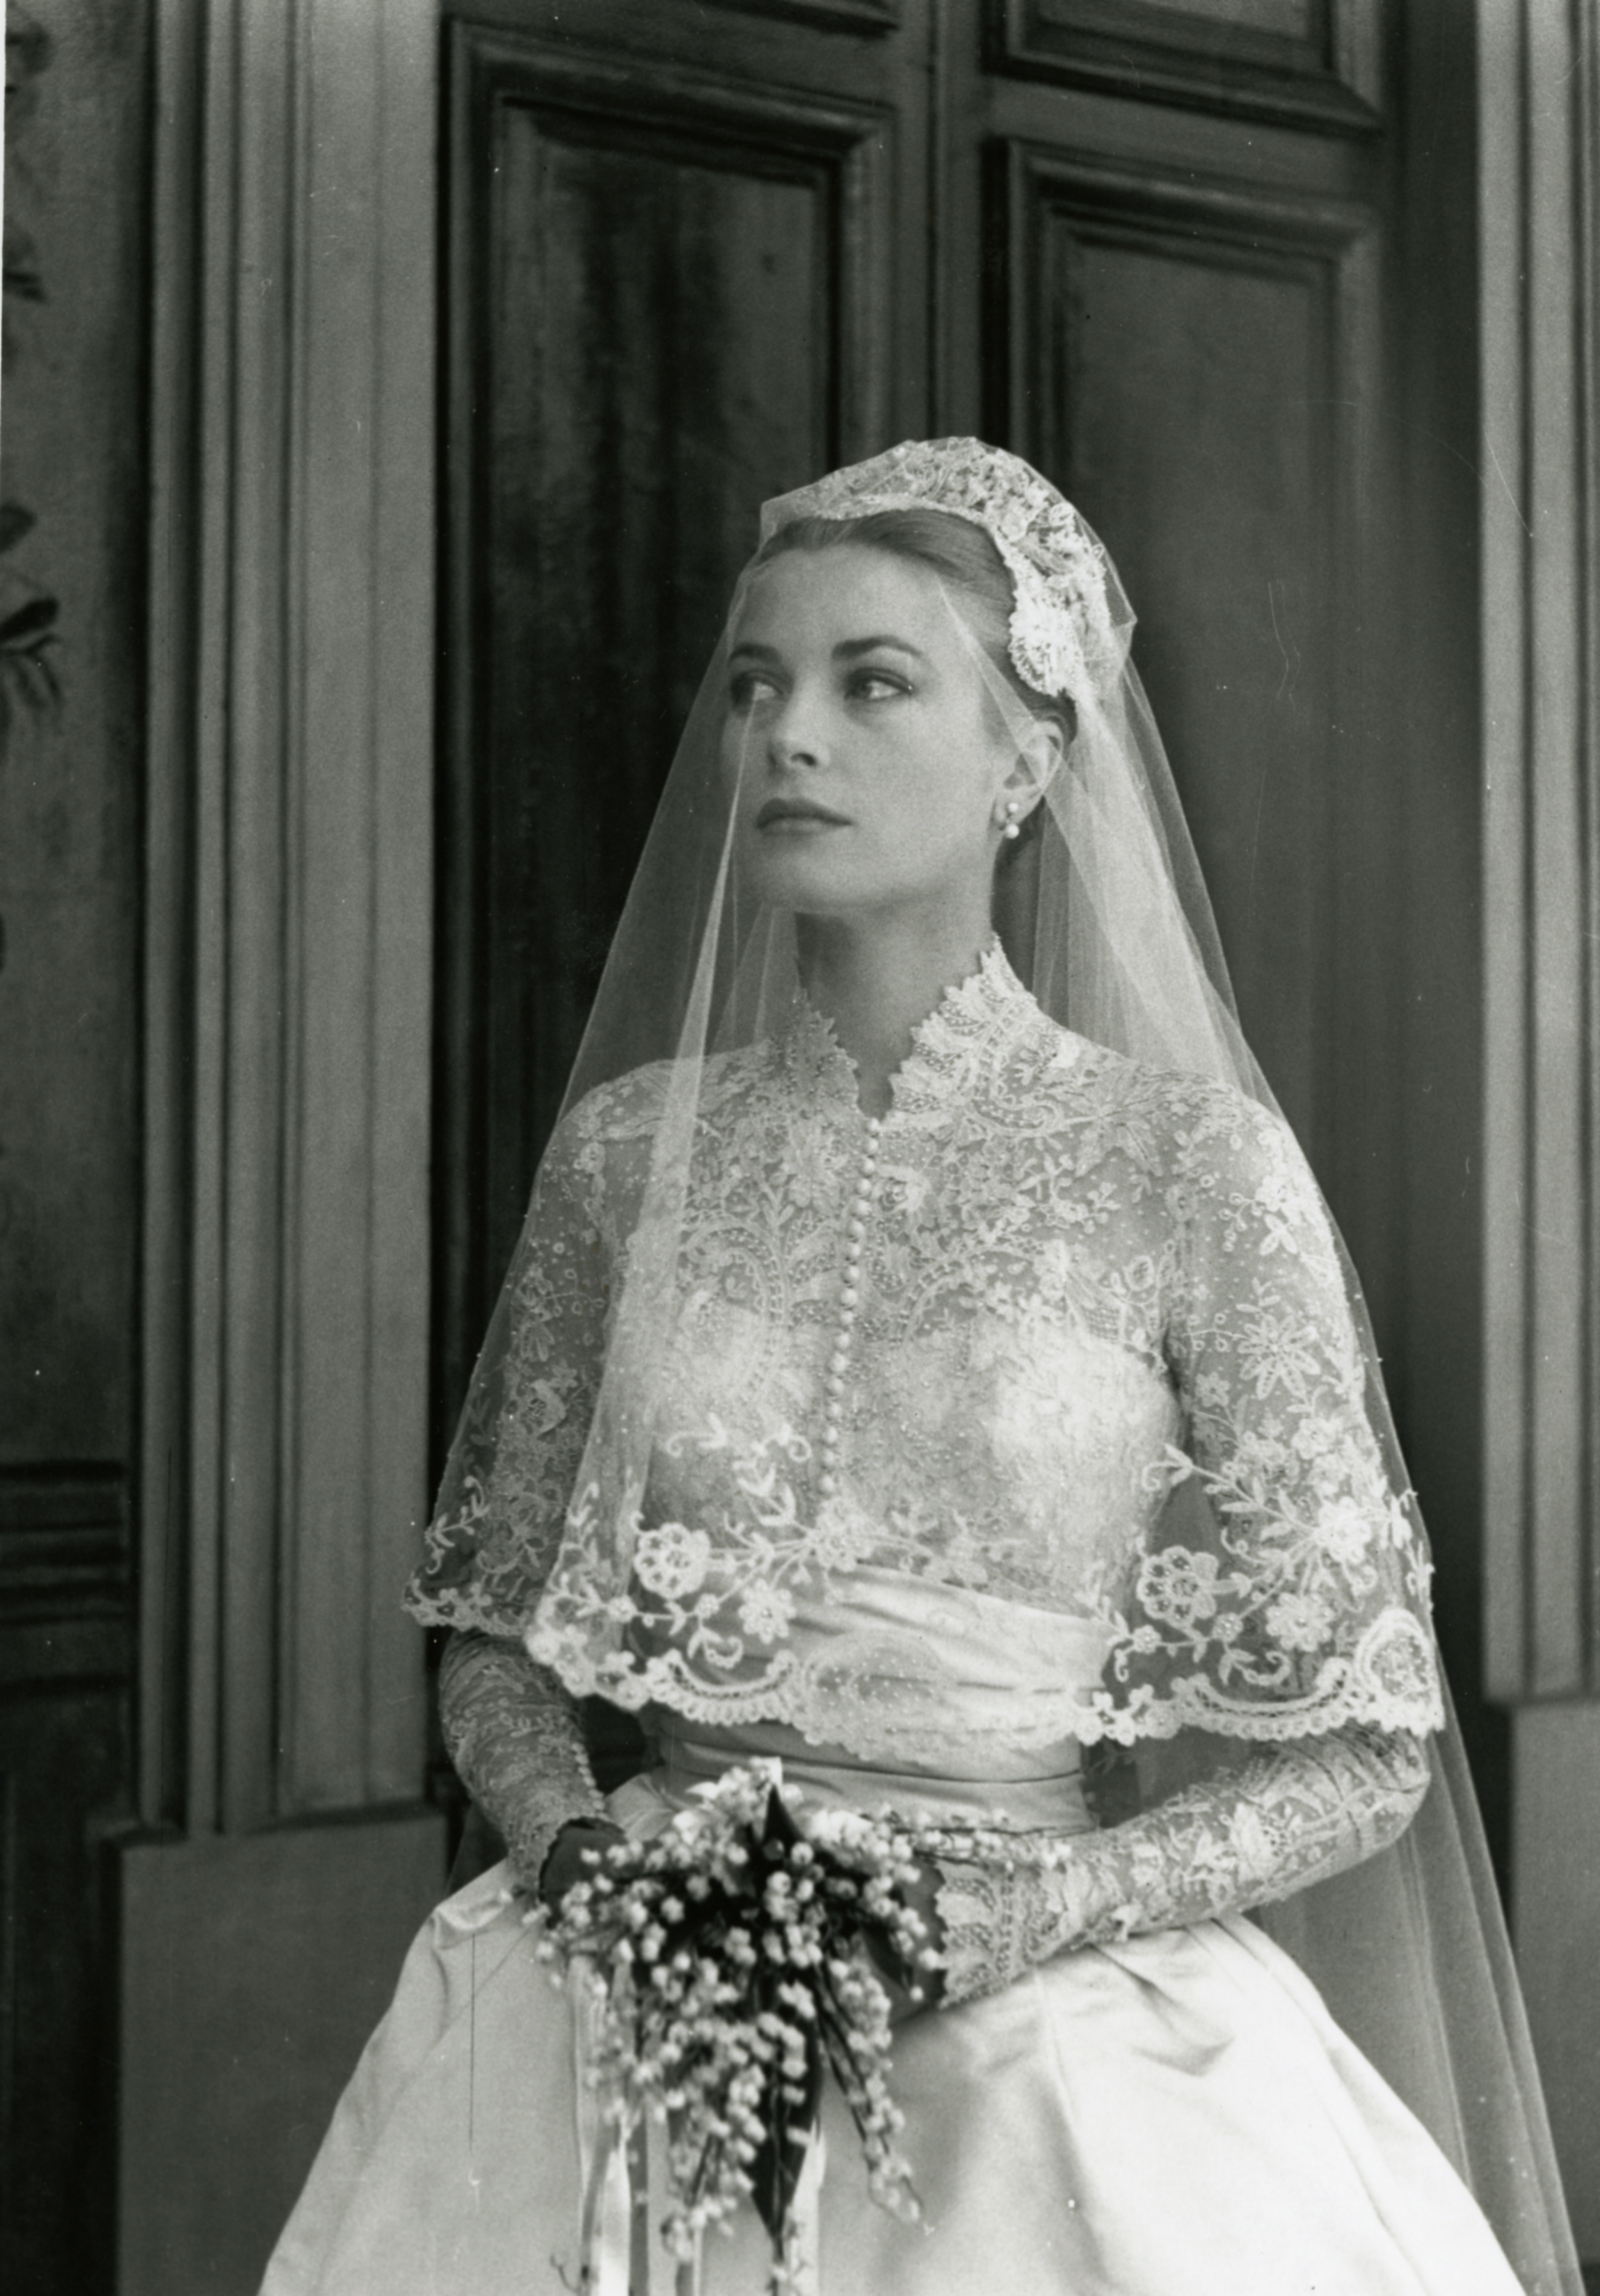 musemedaily: from philadelphia to monaco: grace kelly – beyond the